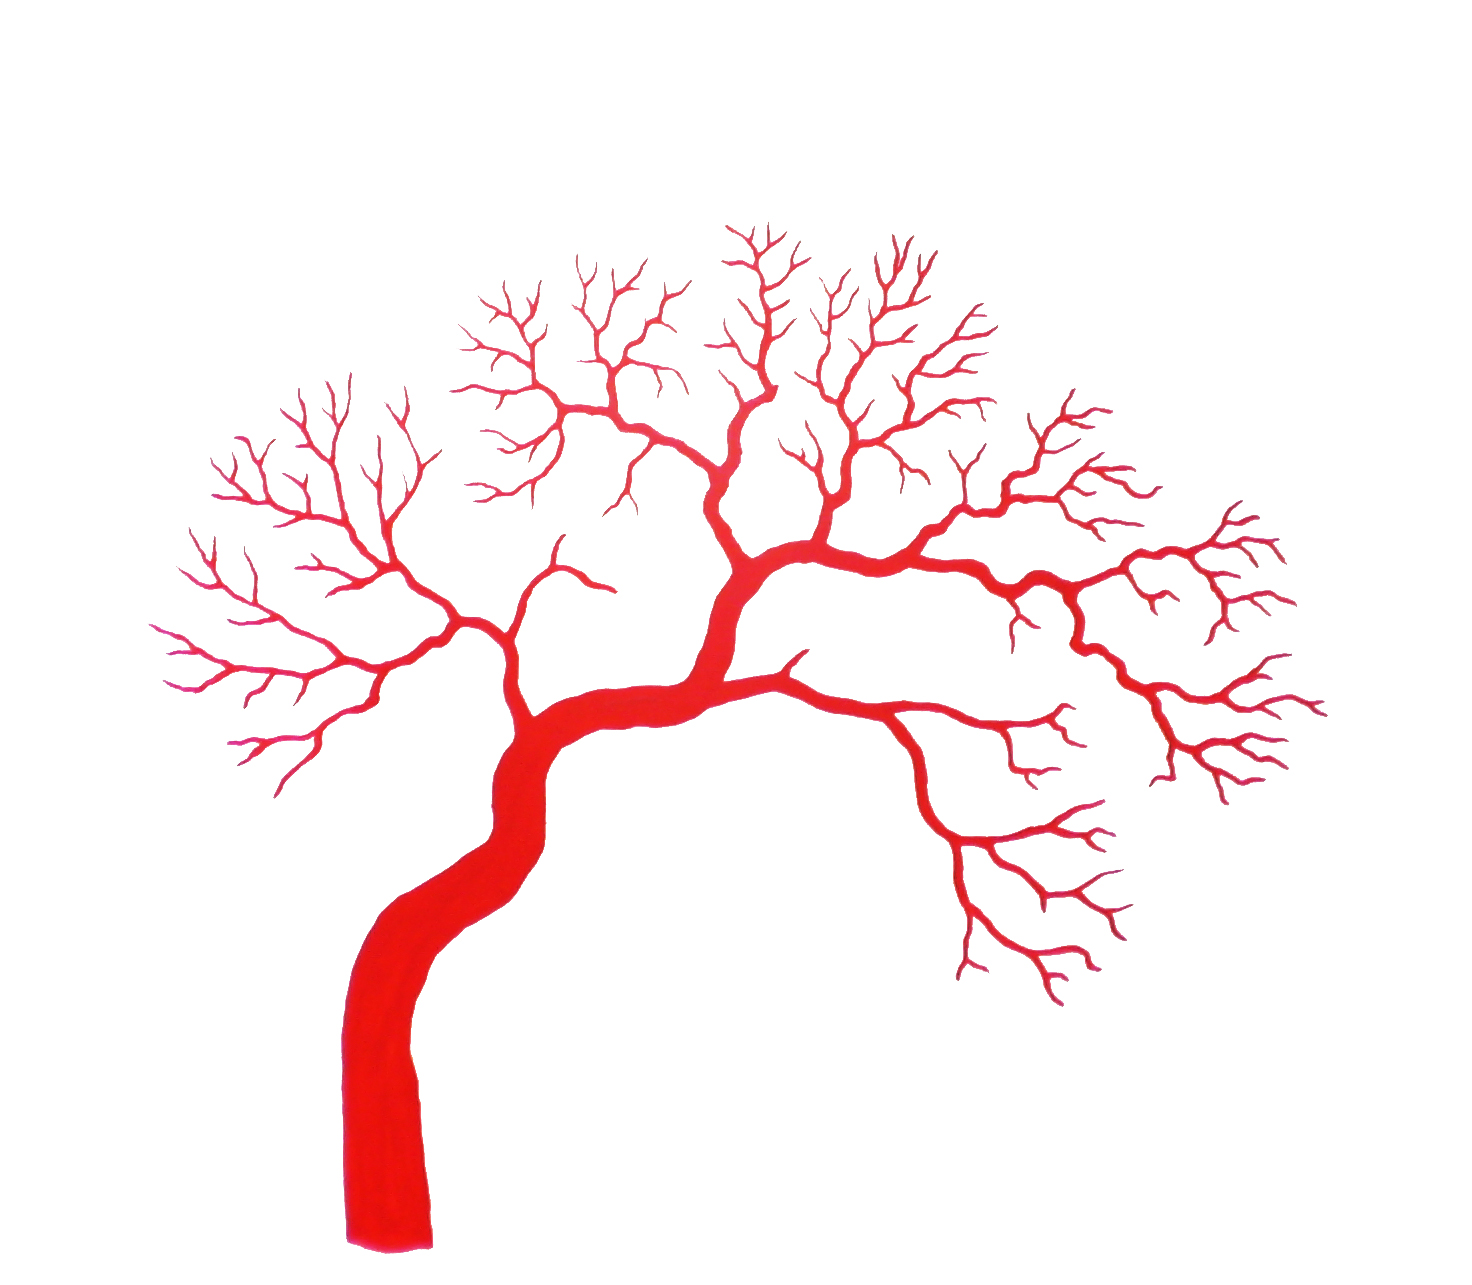 blood red tree3